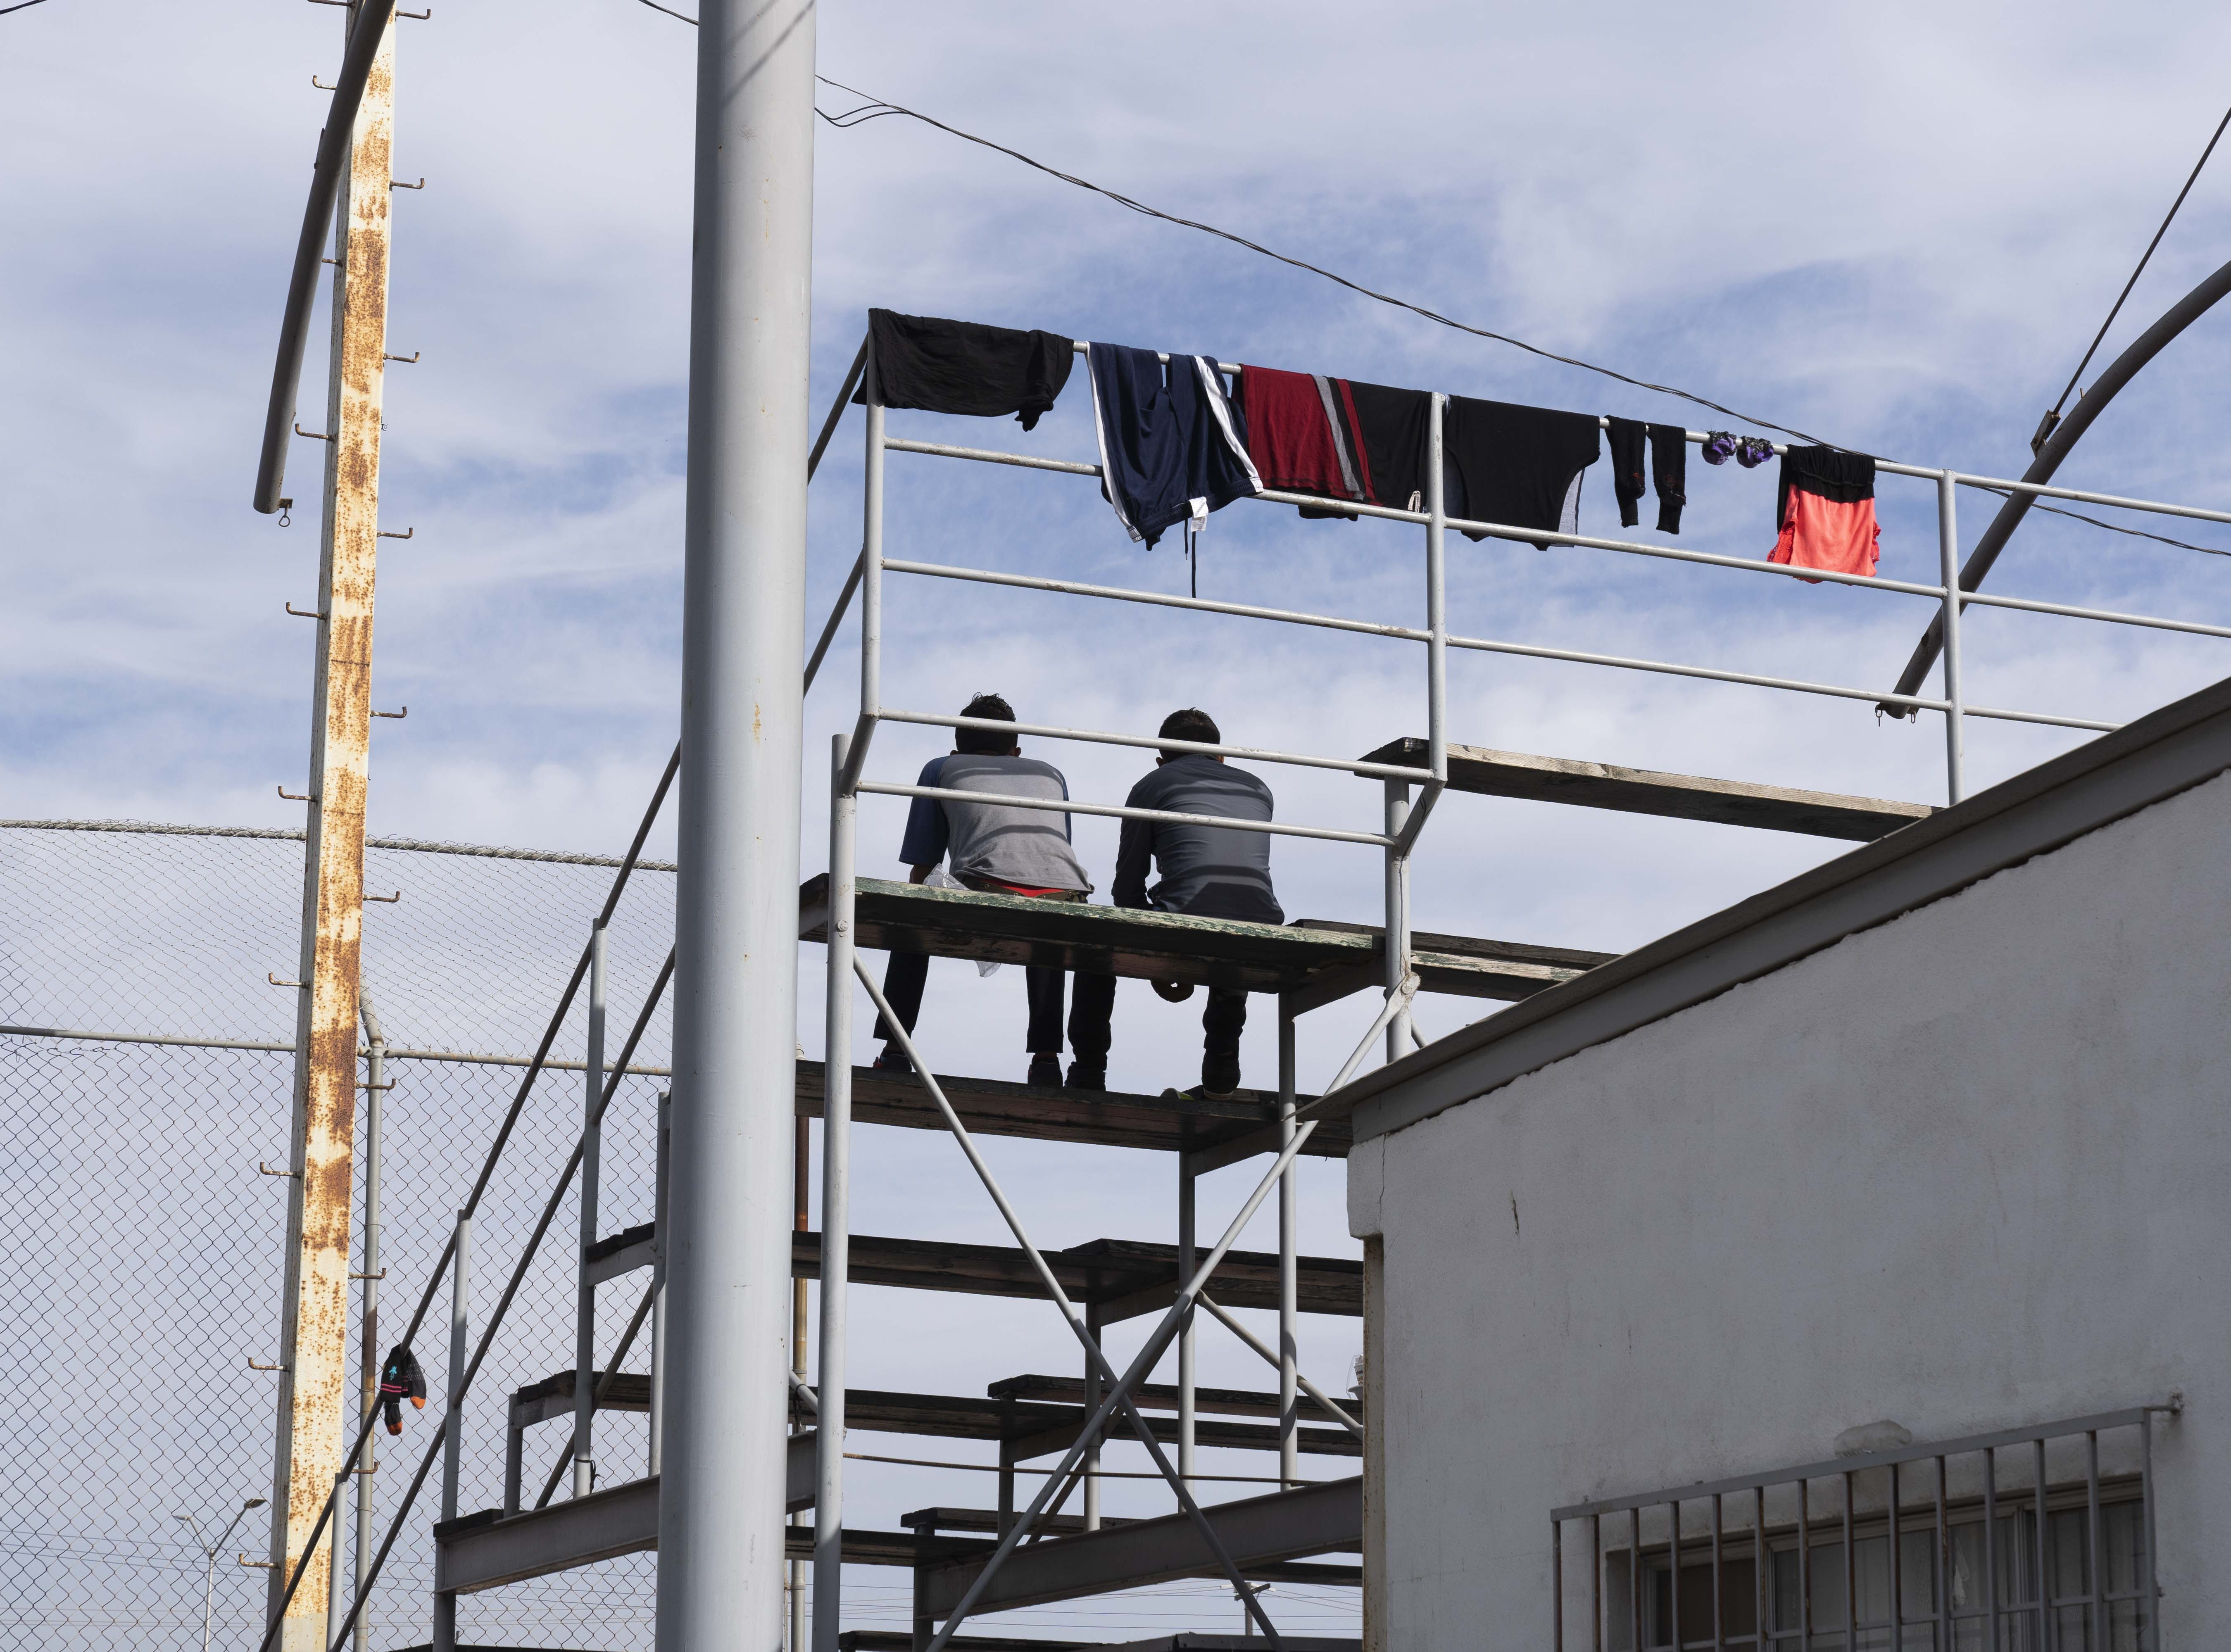 Over 2,500 mostly Central American migrants were staying at the Unidad Deportiva Benito Juarez, a makeshift shelter, in Tijuana, Mexico, on Nov. 18, 2018. Migrants set up camp around the baseball stadium, propping up tents using whatever materials they have available.